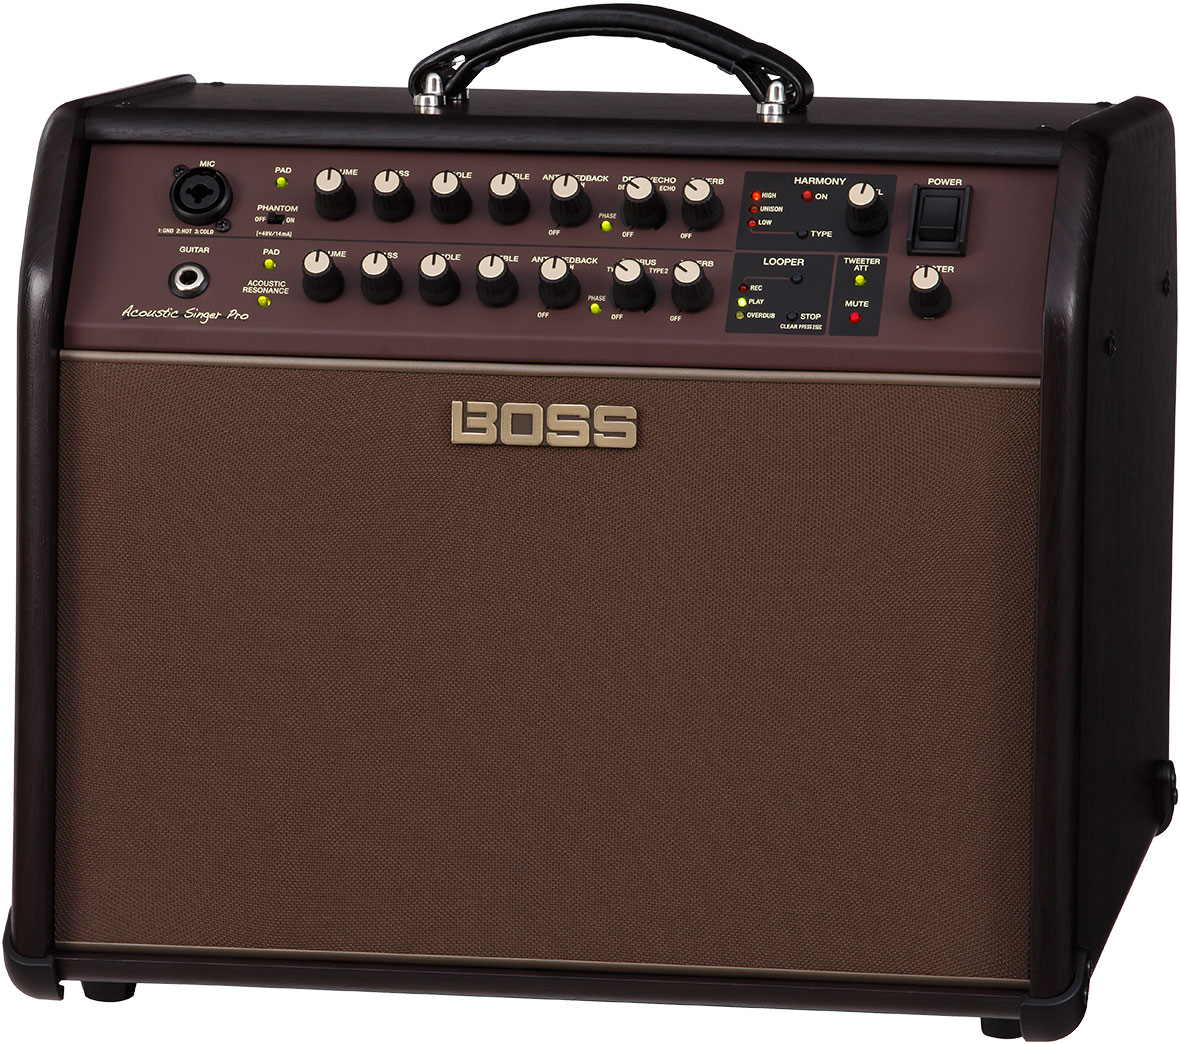 Boss Acoustic Singer Pro Amplifier Taylor Guitar Wiring Diagram